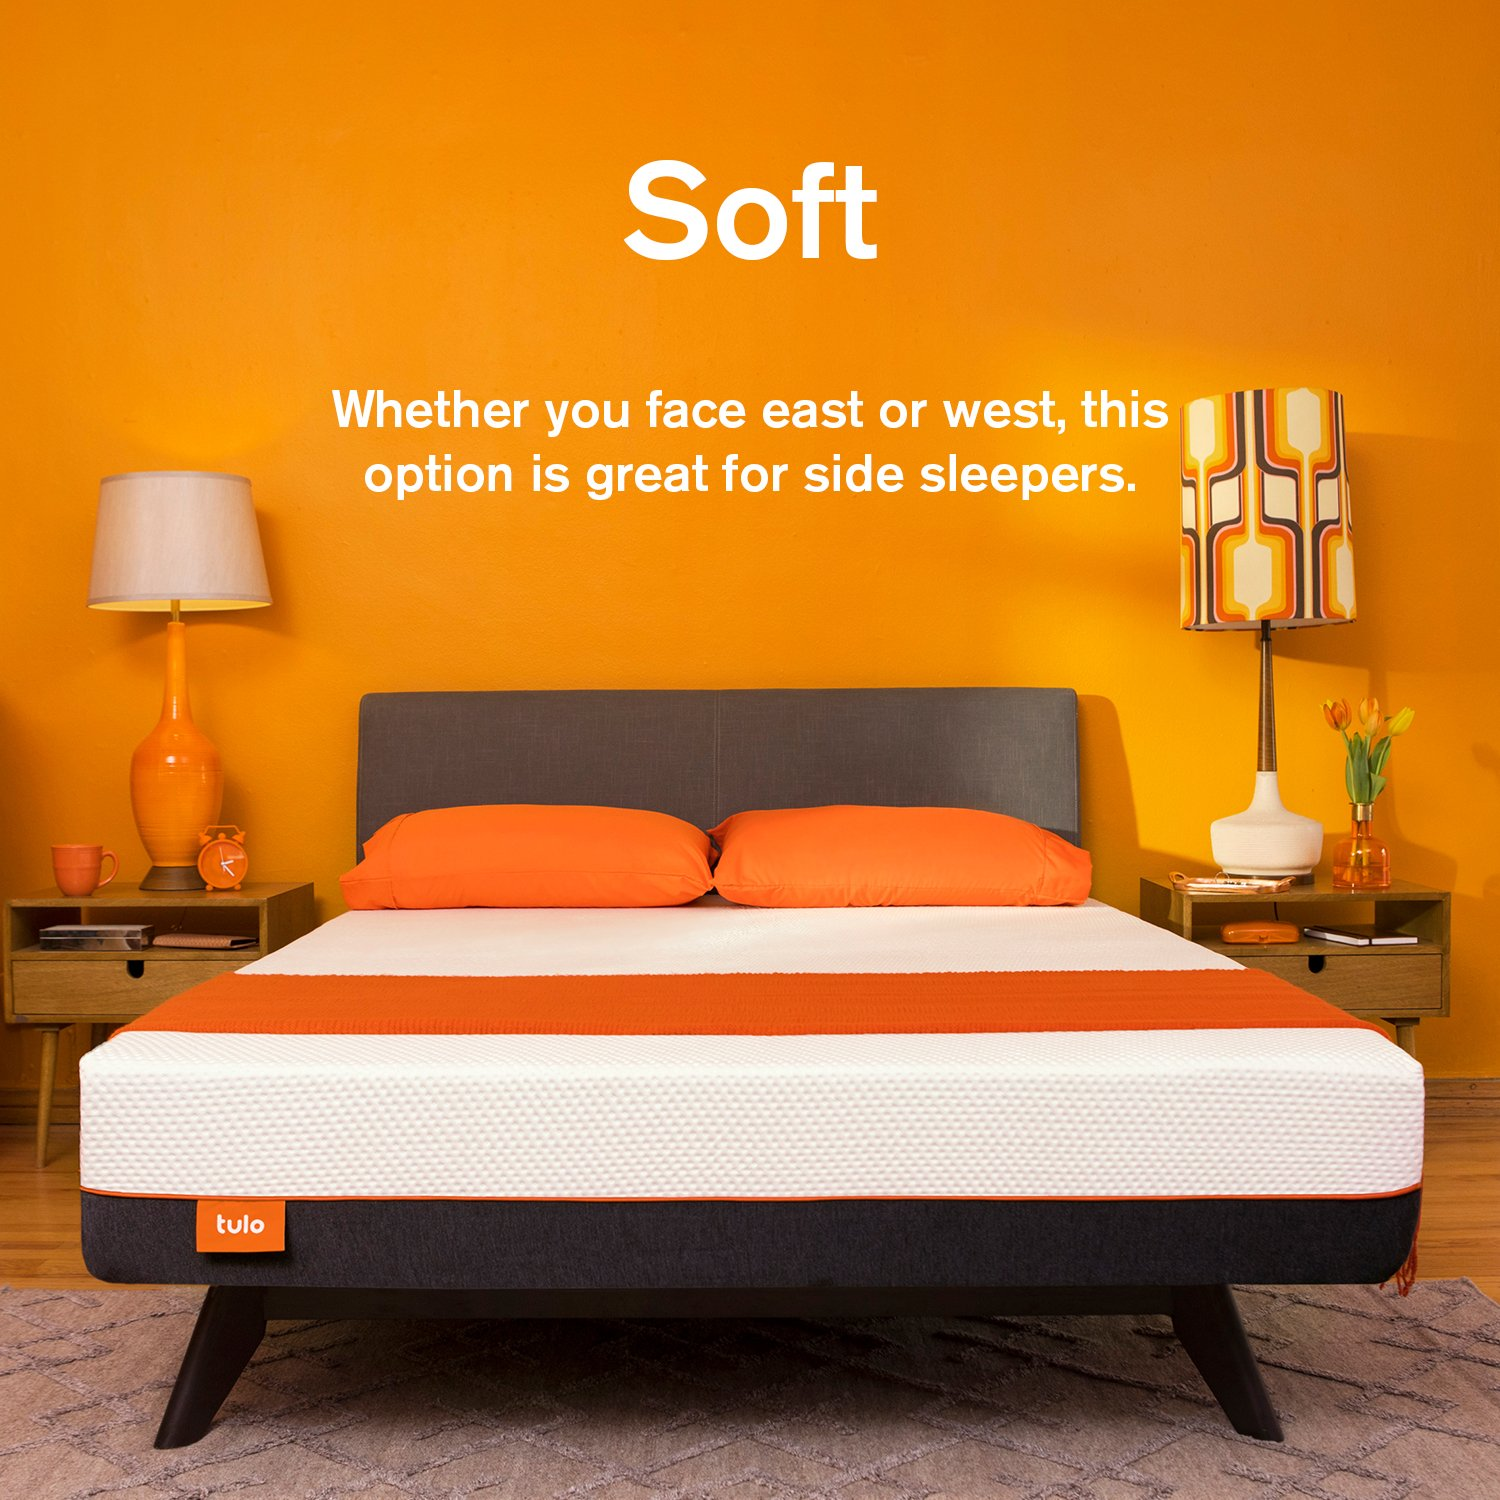 Amazon.com: Mattress by tulo, Pick your Comfort Level, Soft Full Size 10